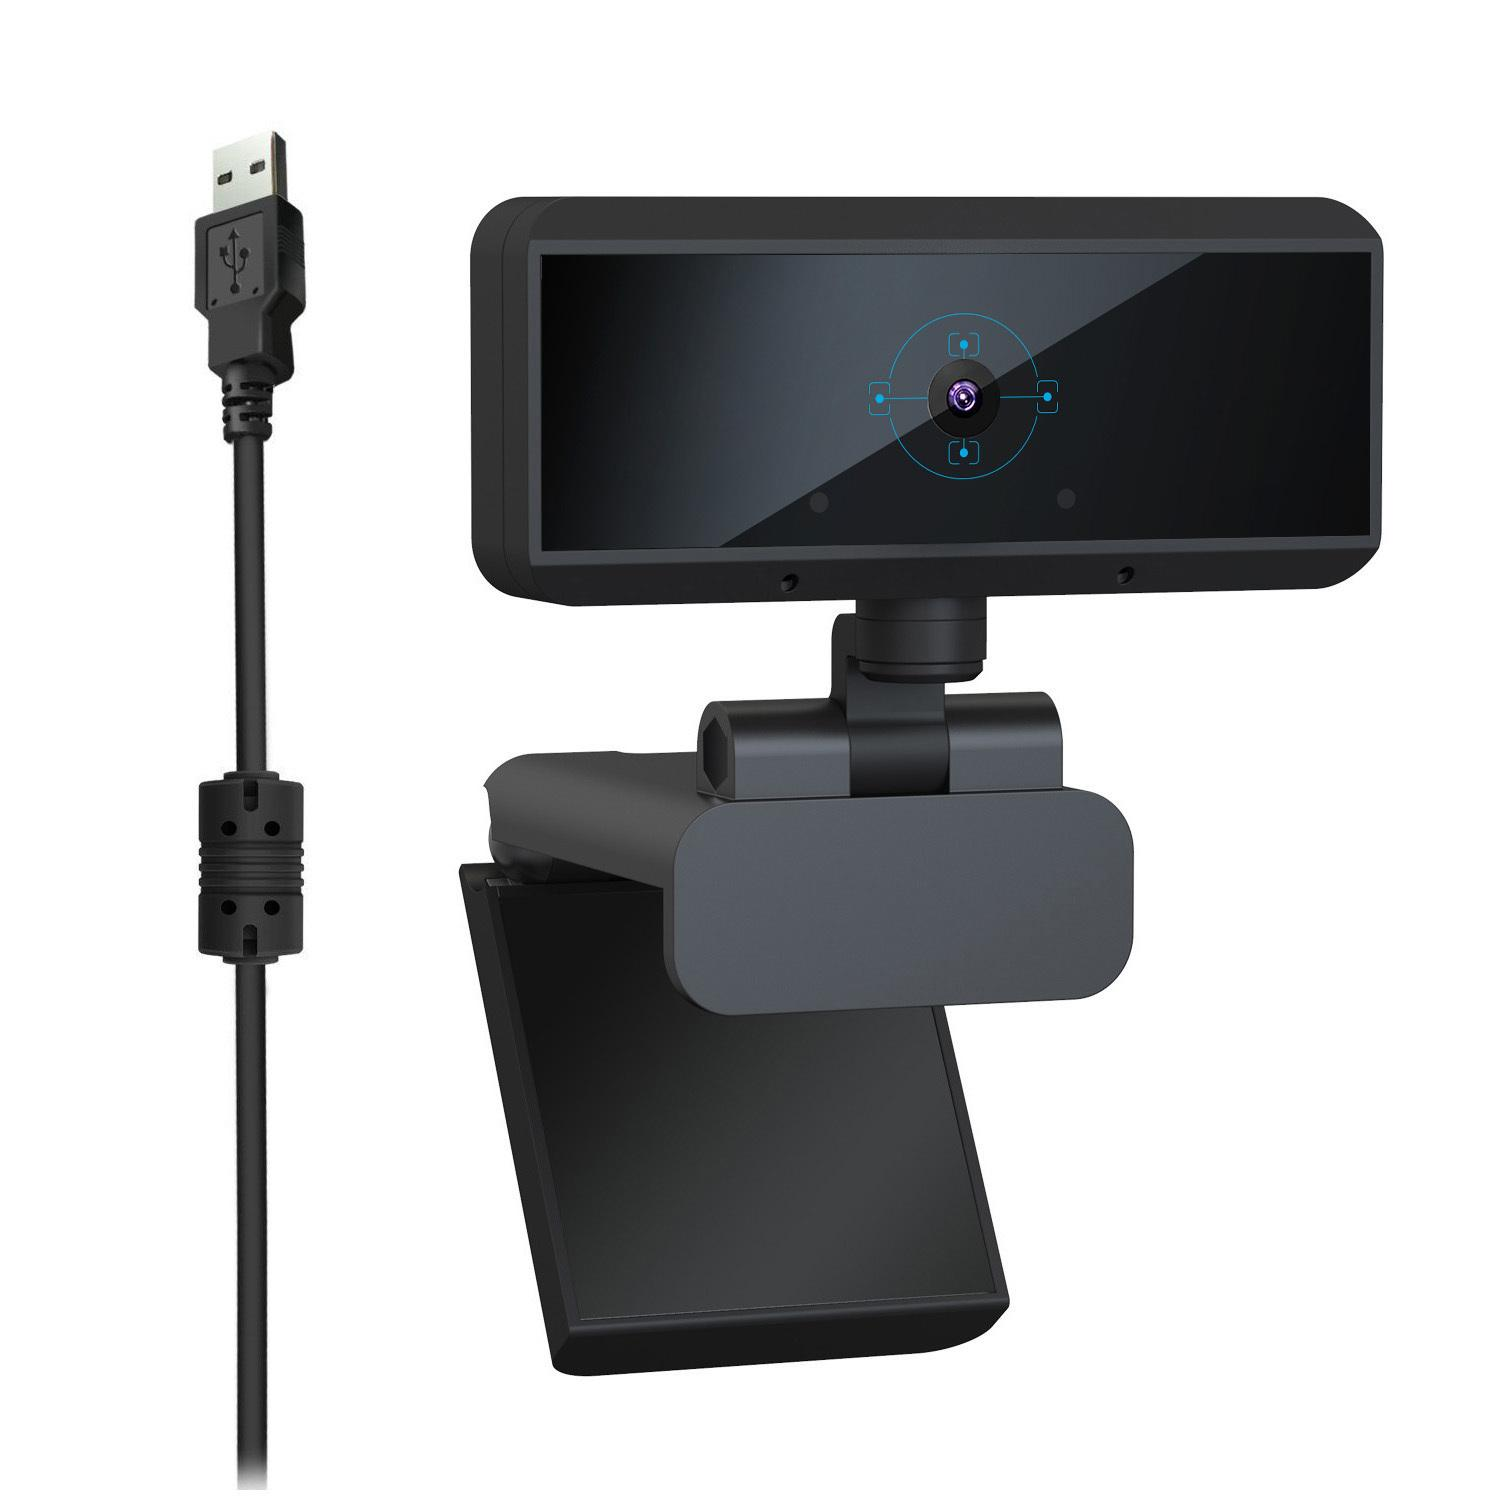 Full HD 1080P 30fps 5M Pixels USB Webcam Built-in Microphone Auto Focus Computer Peripheral Web Camera for Youtube PC Laptop Cam T200524